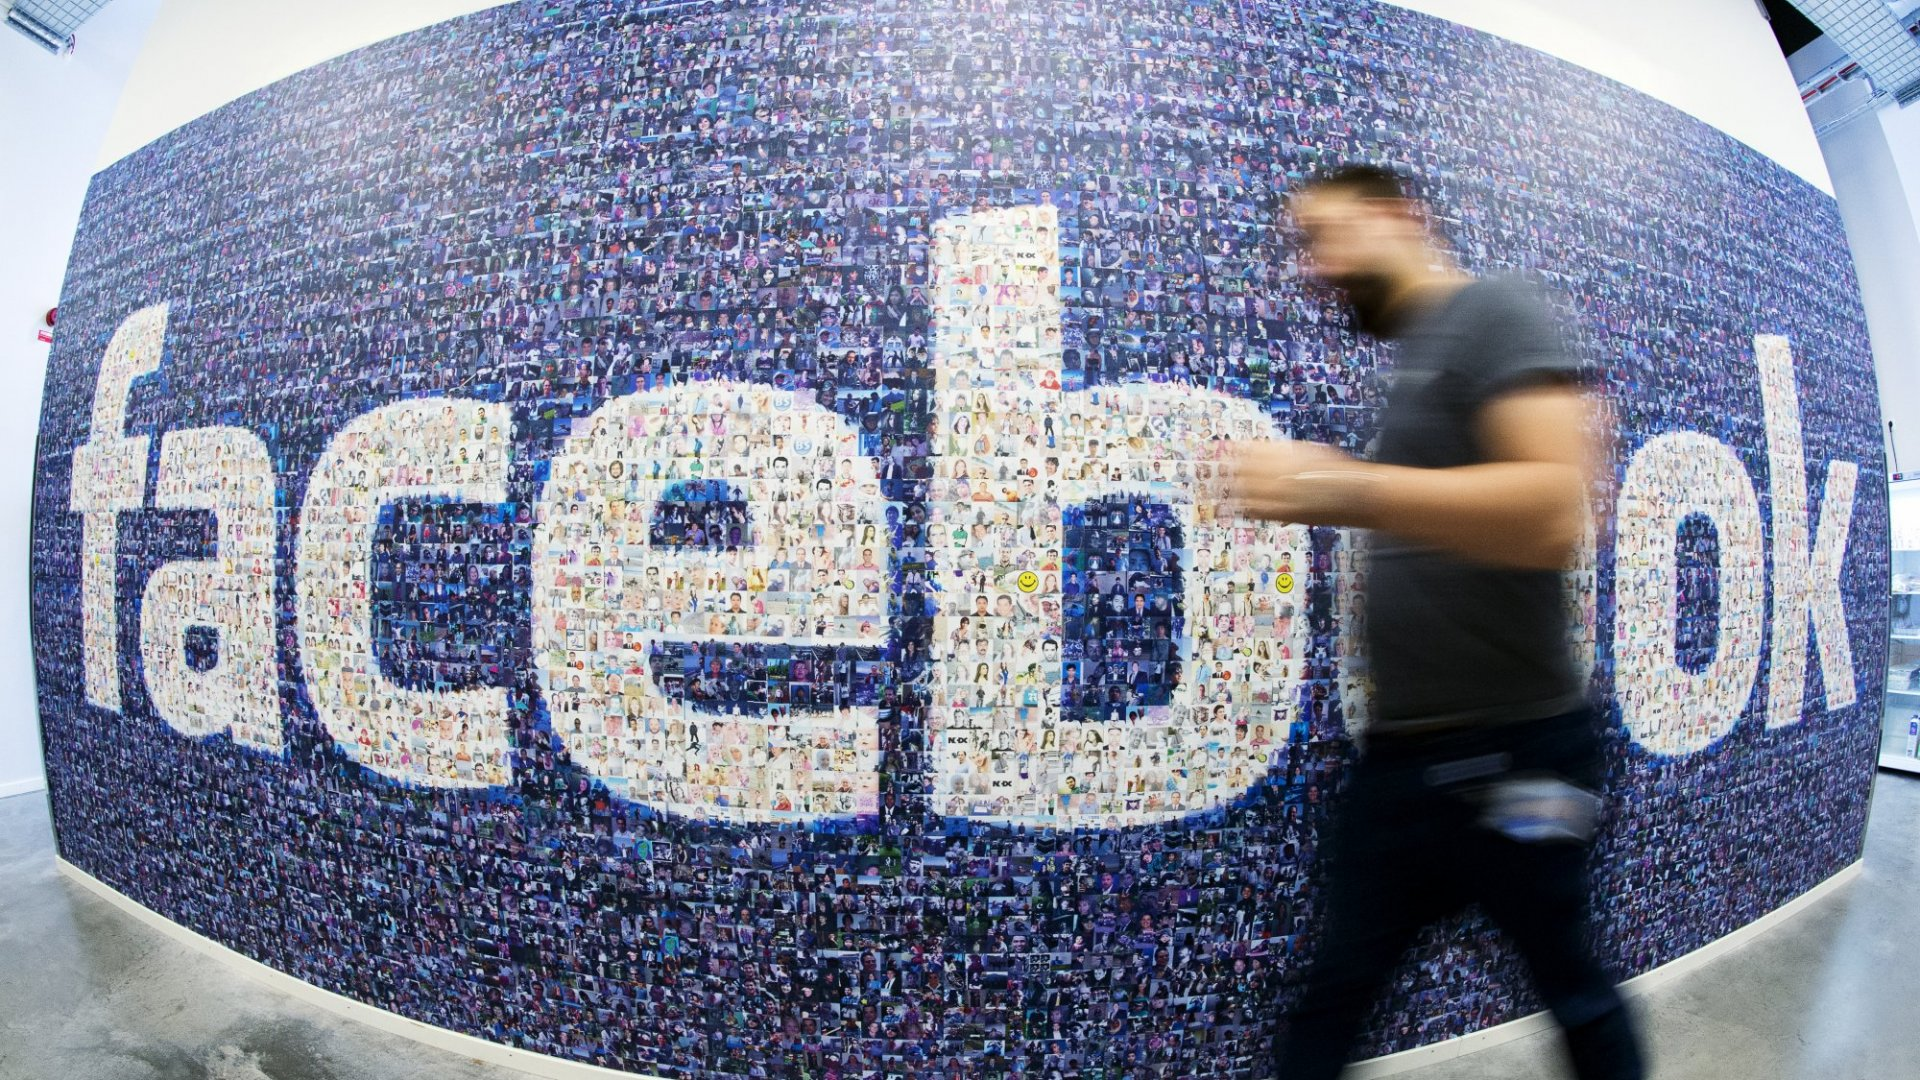 How Facebook Gaslights Its Users by Spreading Bogus News